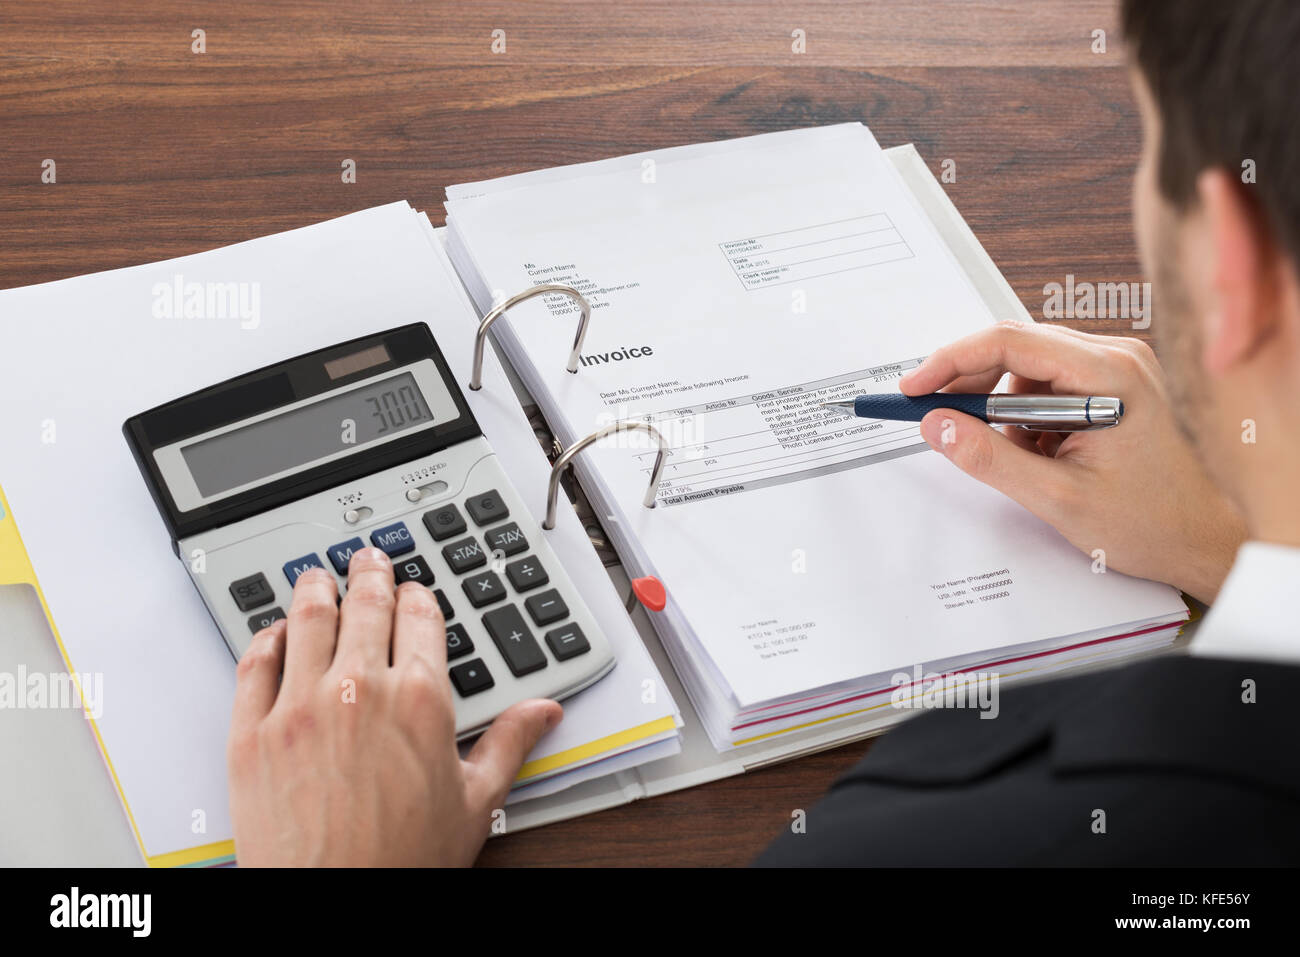 Photo Of Businessman Analyzing Invoice With Calculator - Stock Image